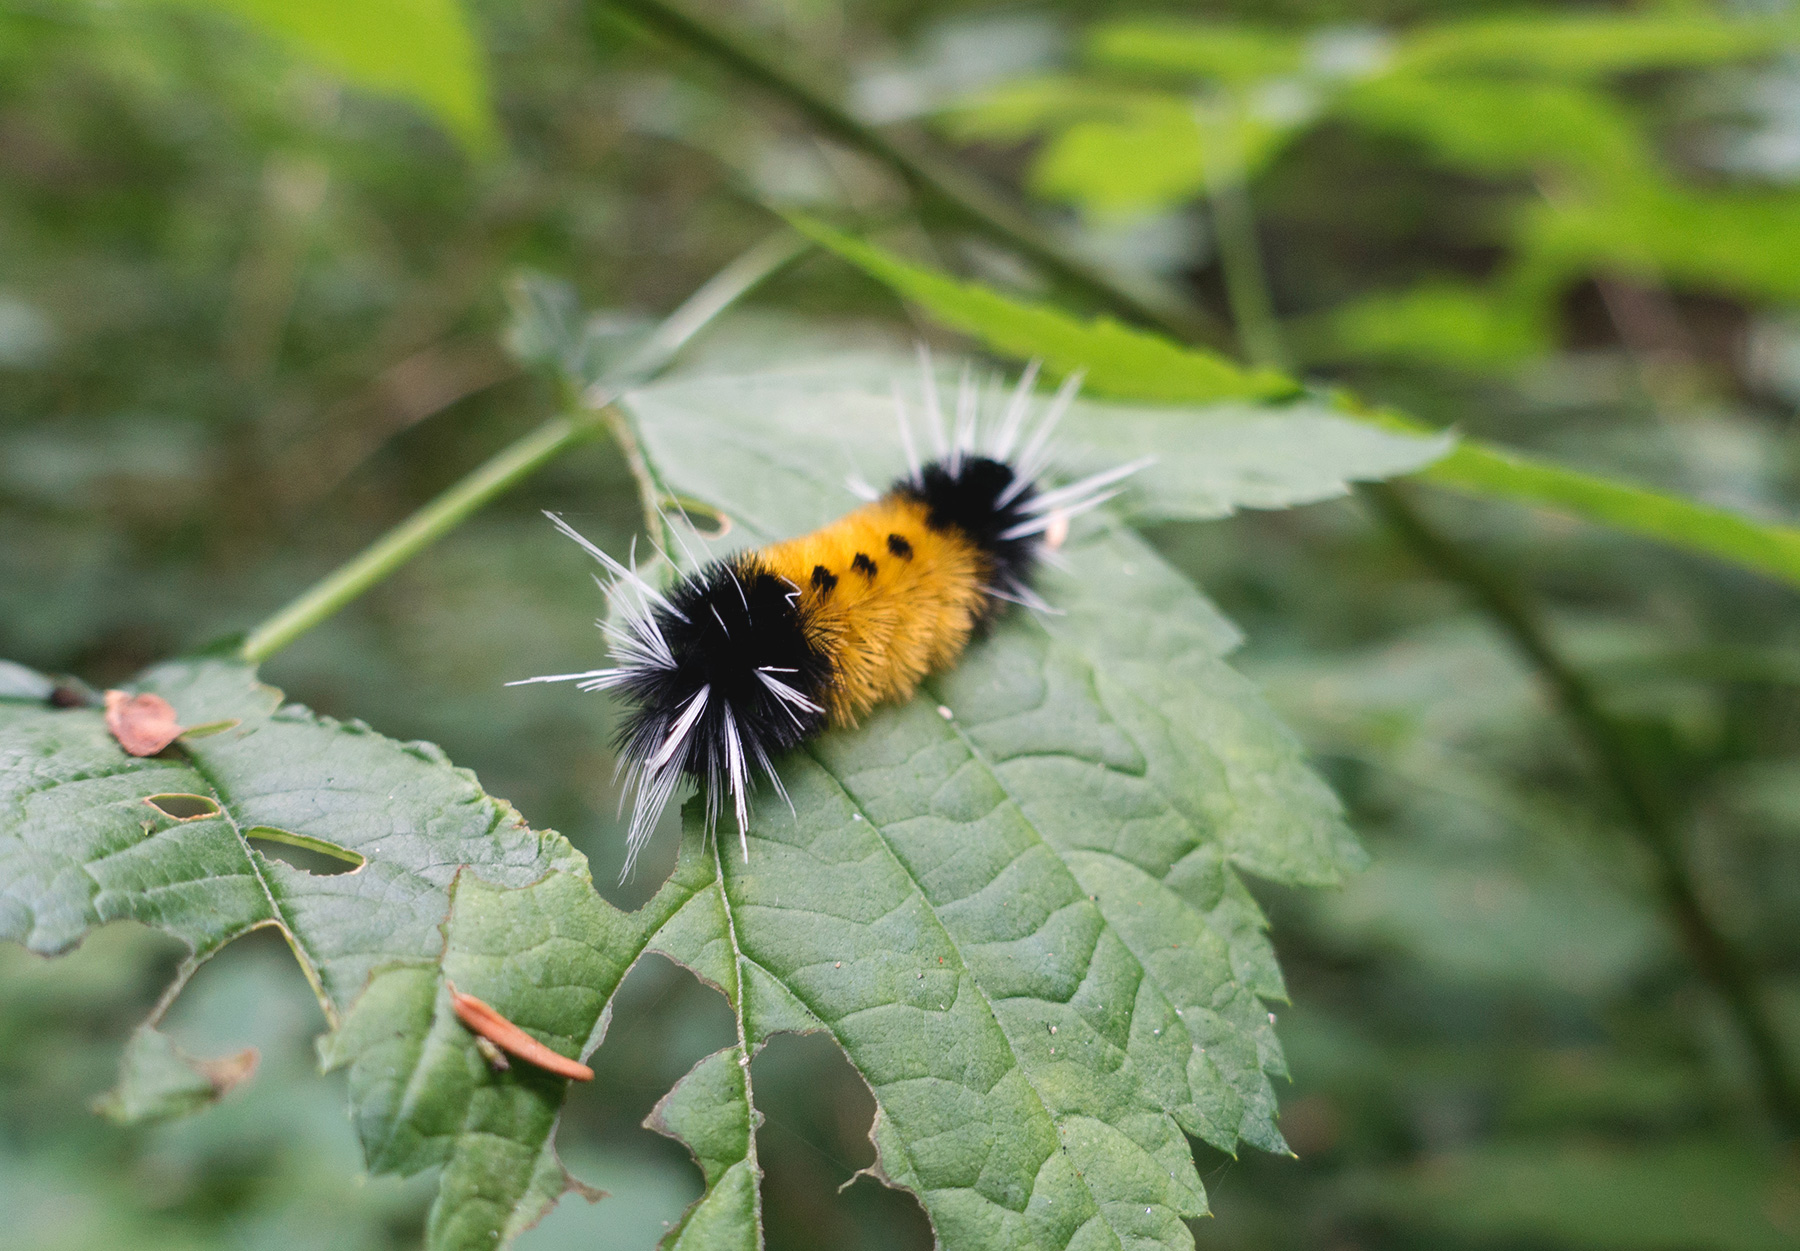 Yellow and black hairy caterpillar